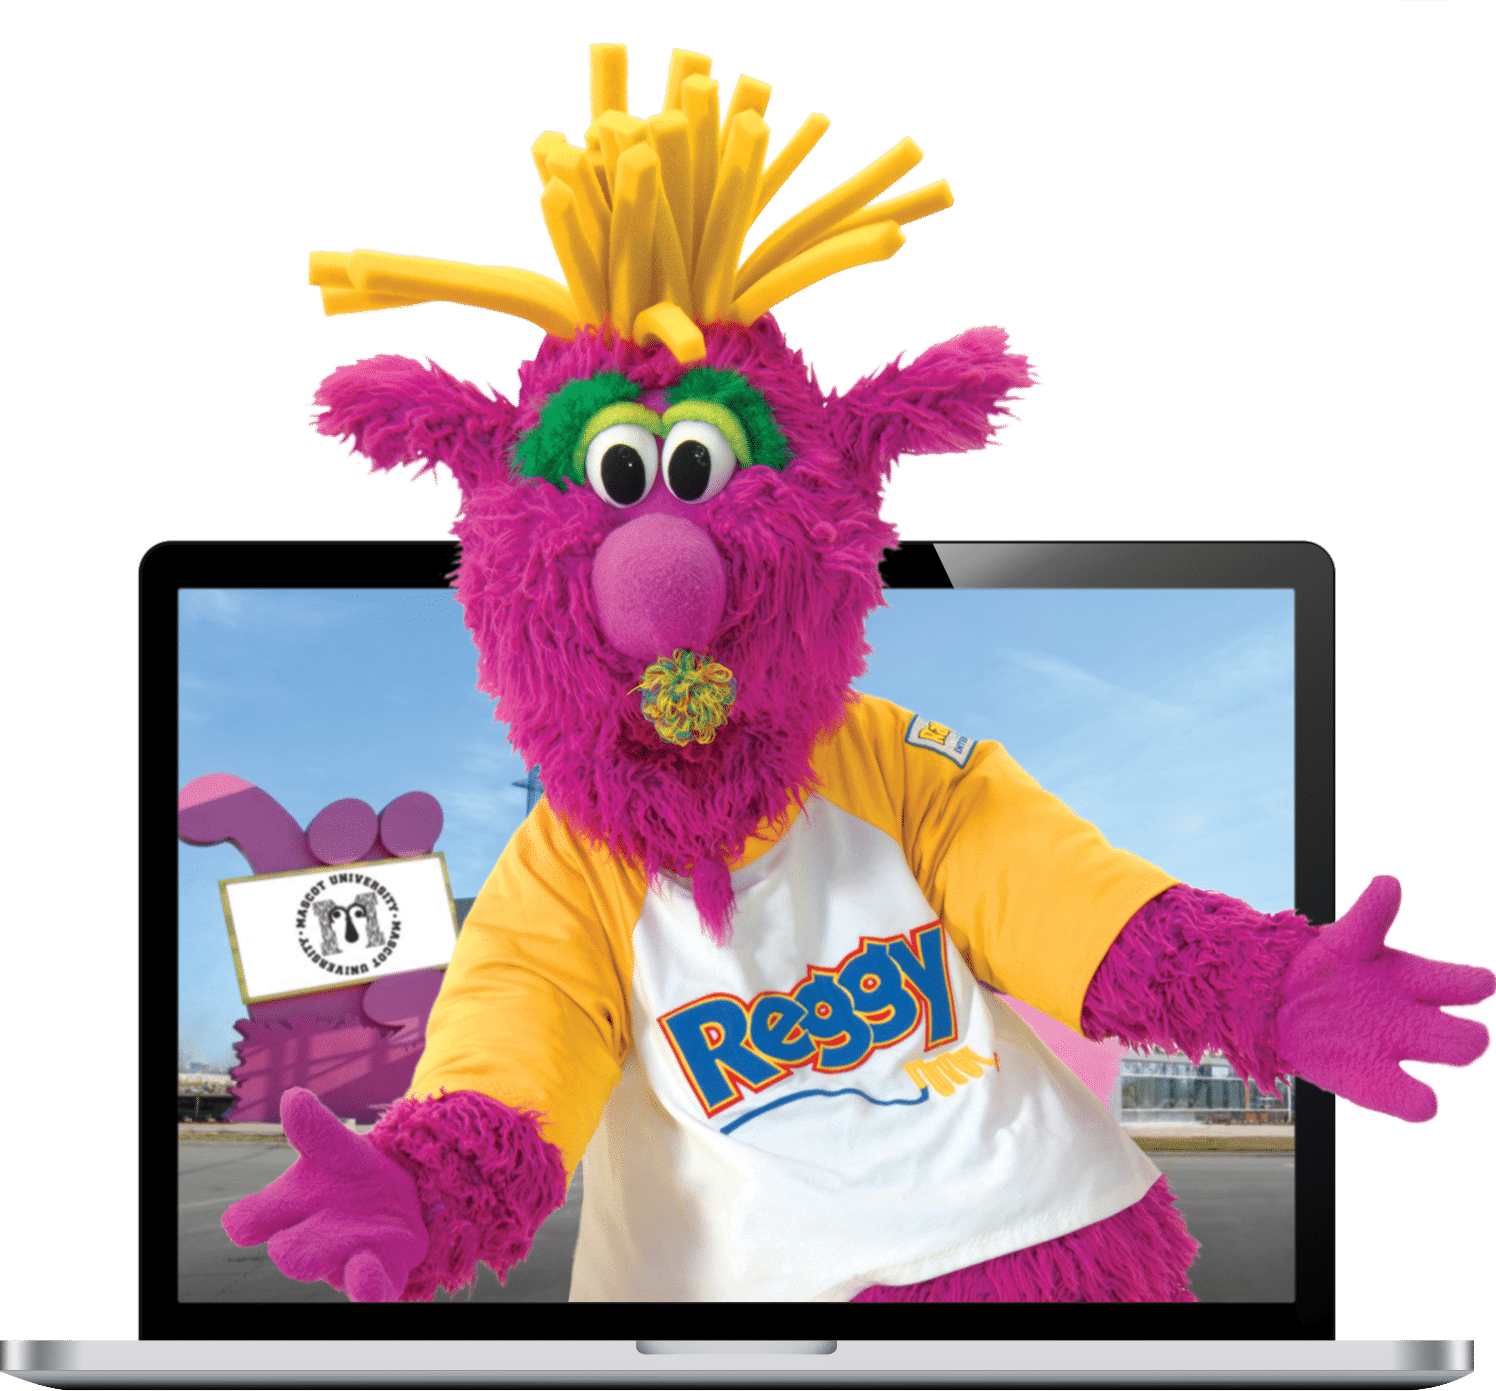 Reggy in a laptop computer